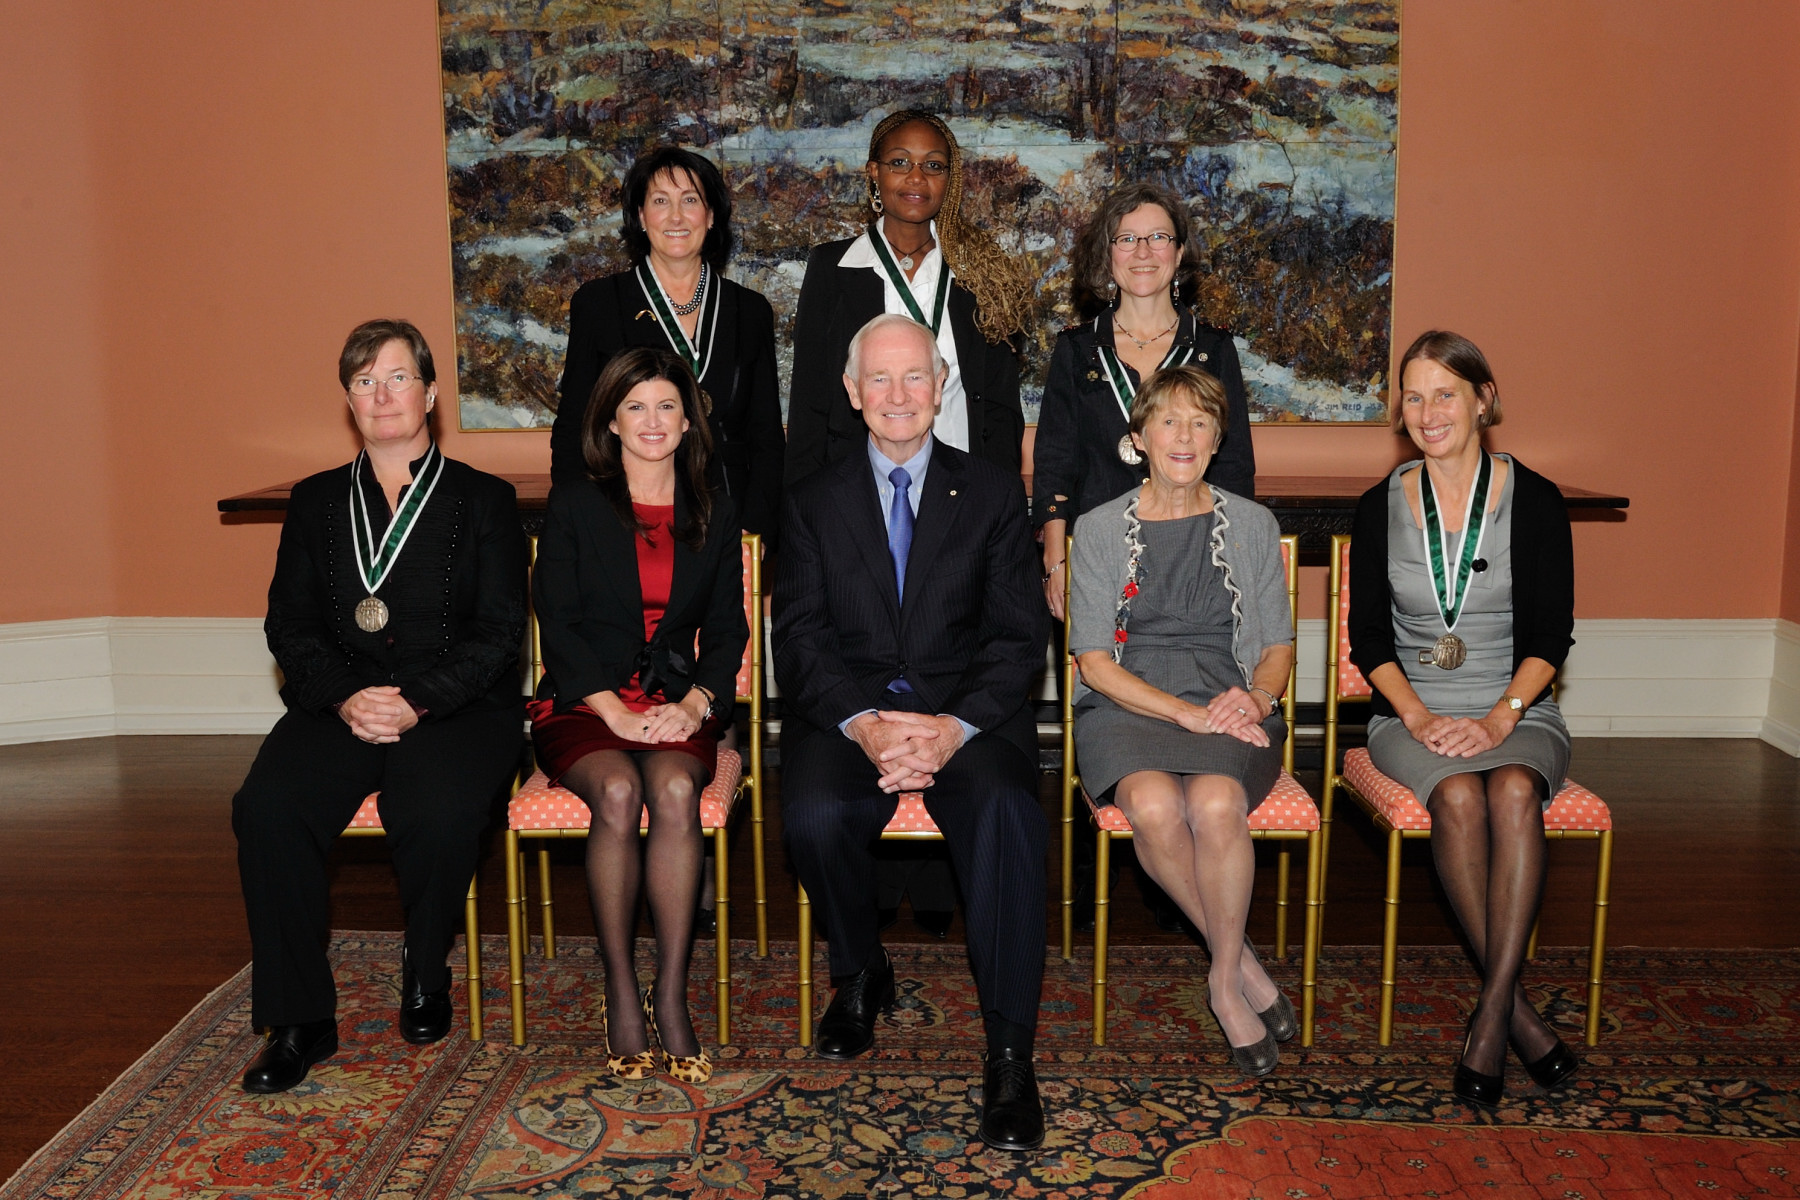 In 1929, five women from Alberta won the judiciary battle that granted Canadian women the right to be recognized as persons. The Governor General's Awards in Commemoration of the Persons Case were established in 1979 by the government of Canada, with the support of former governor general, the Right Honourable Edward Schreyer, to celebrate the 50th anniversary of this historic decision.